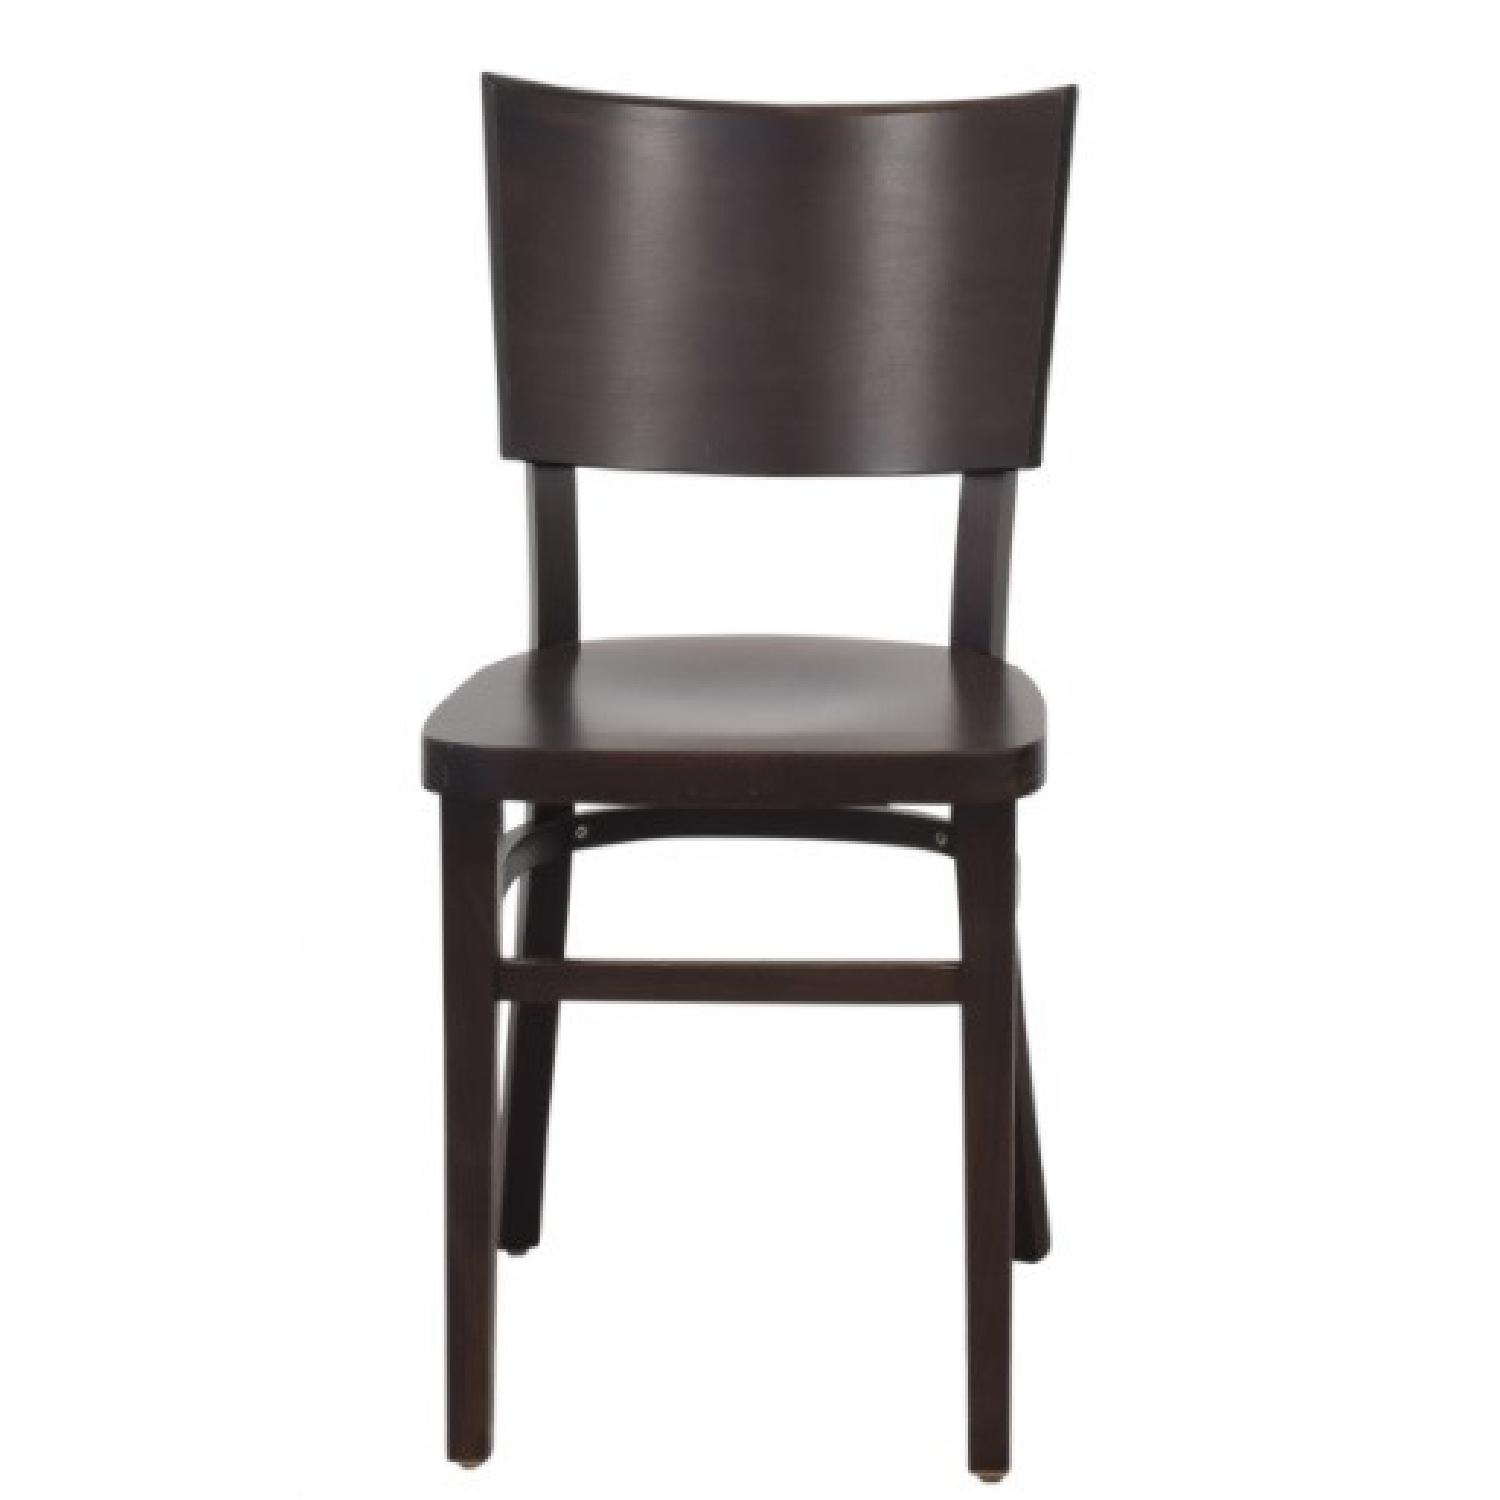 Design Within Reach Kyoto Dining Chairs in Coffee - image-5